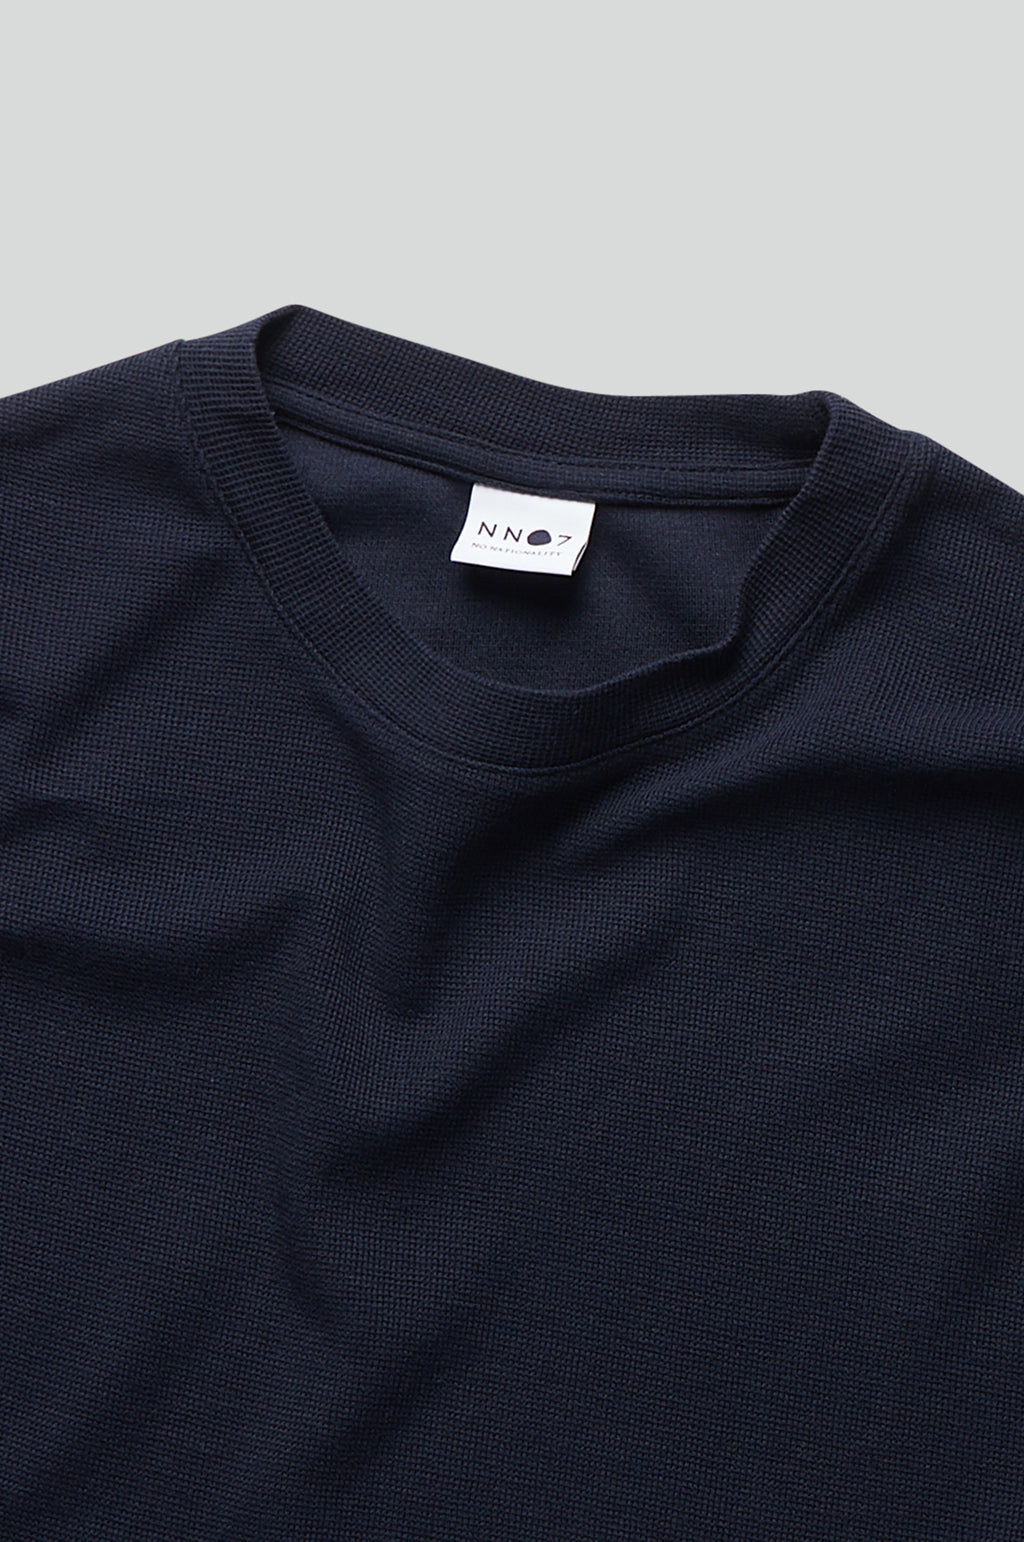 Clive Long Sleeve T Shirt in Navy Blue